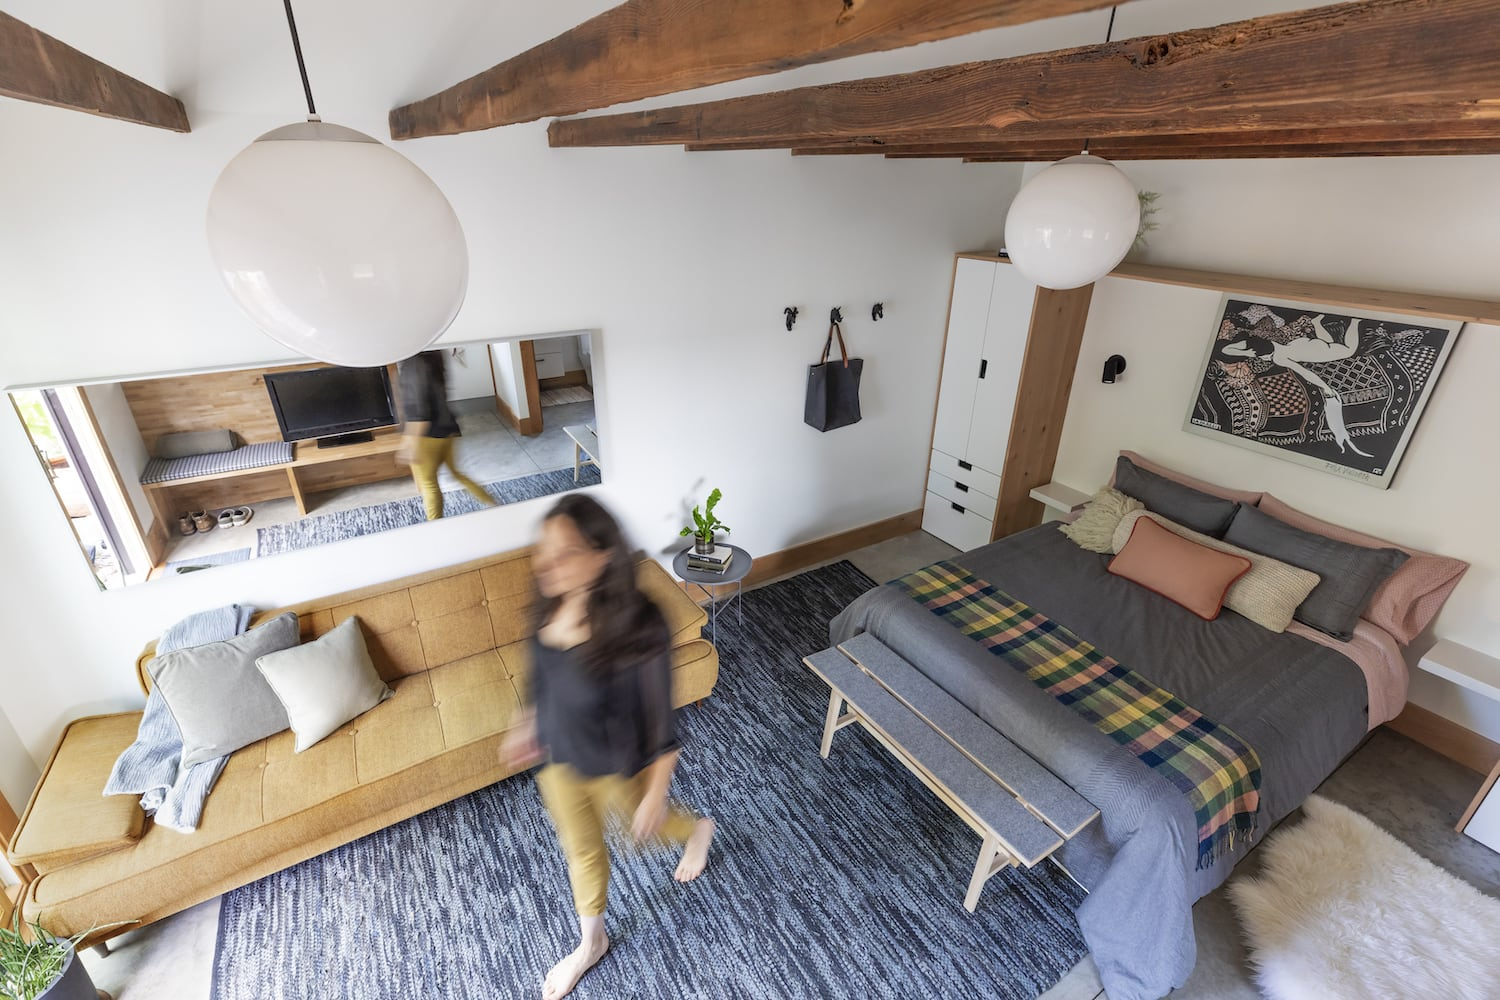 Portland ADU with exposed wood beams, concrete floors, bed and couch